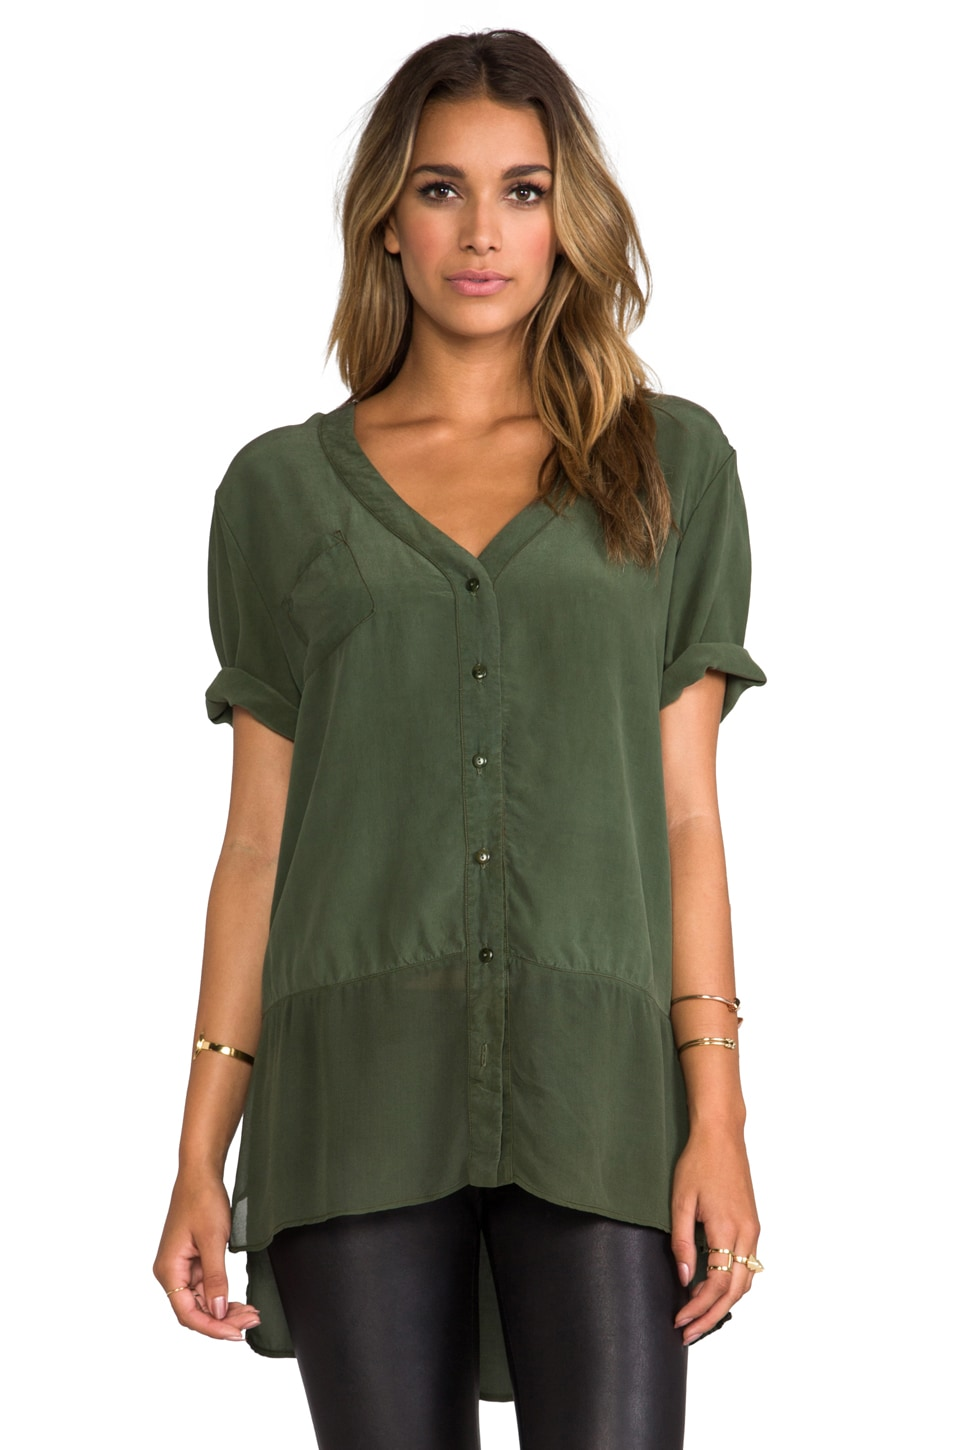 Gypsy 05 Mixed Silk Button Down Top in Moss